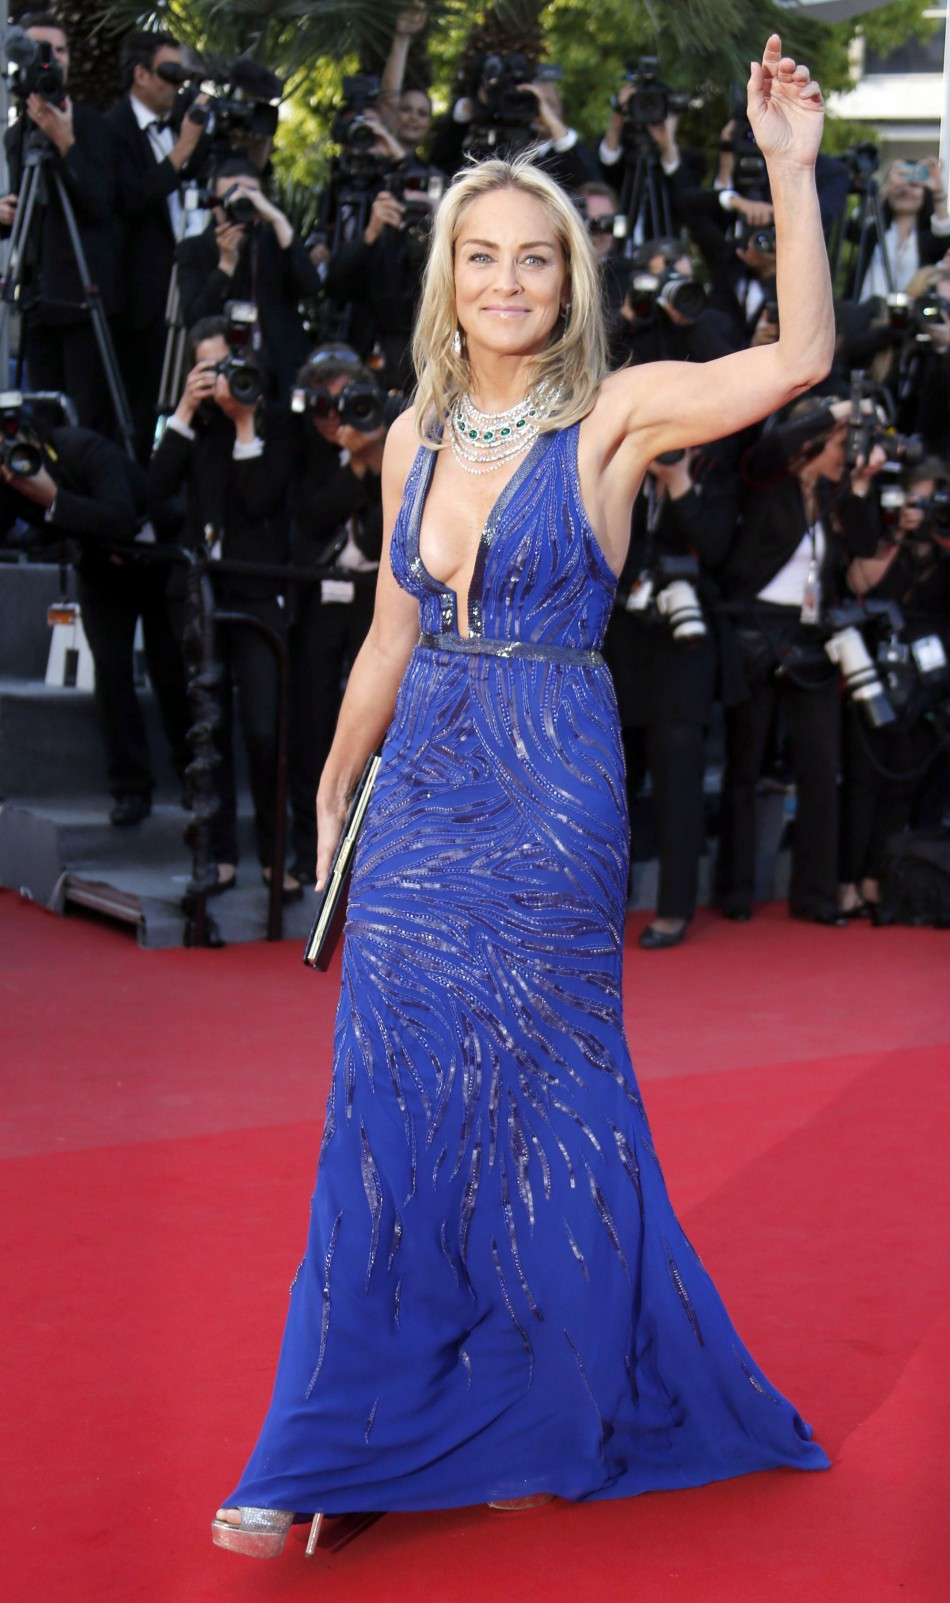 Cannes Film Festival 2013: Celebrities on Red Carpet